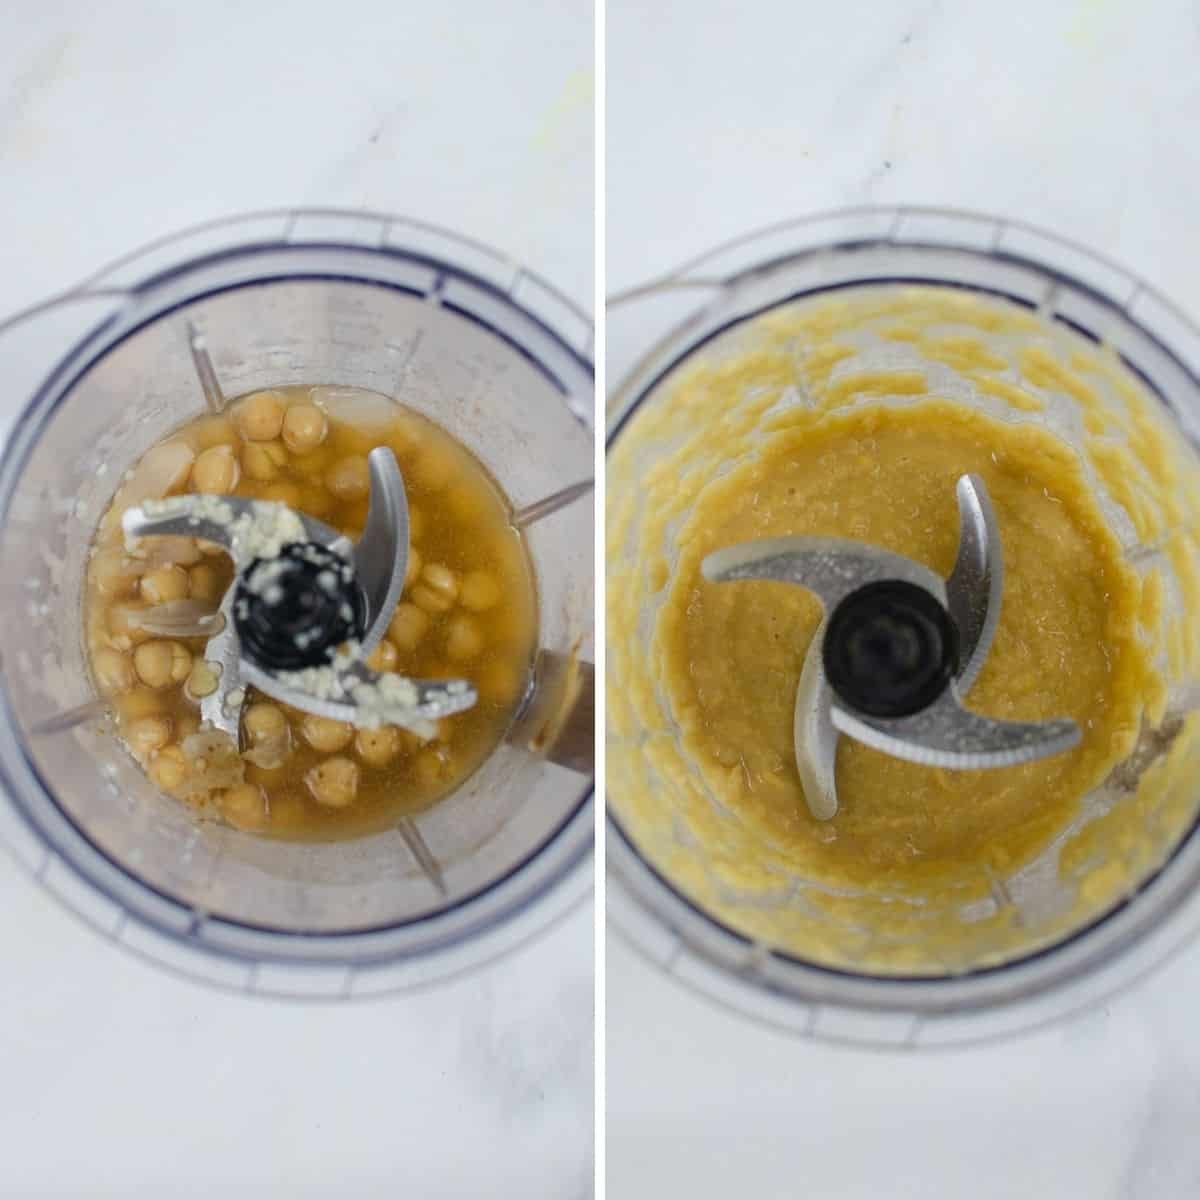 The process steps to make homemade hummus being blended in a blender/